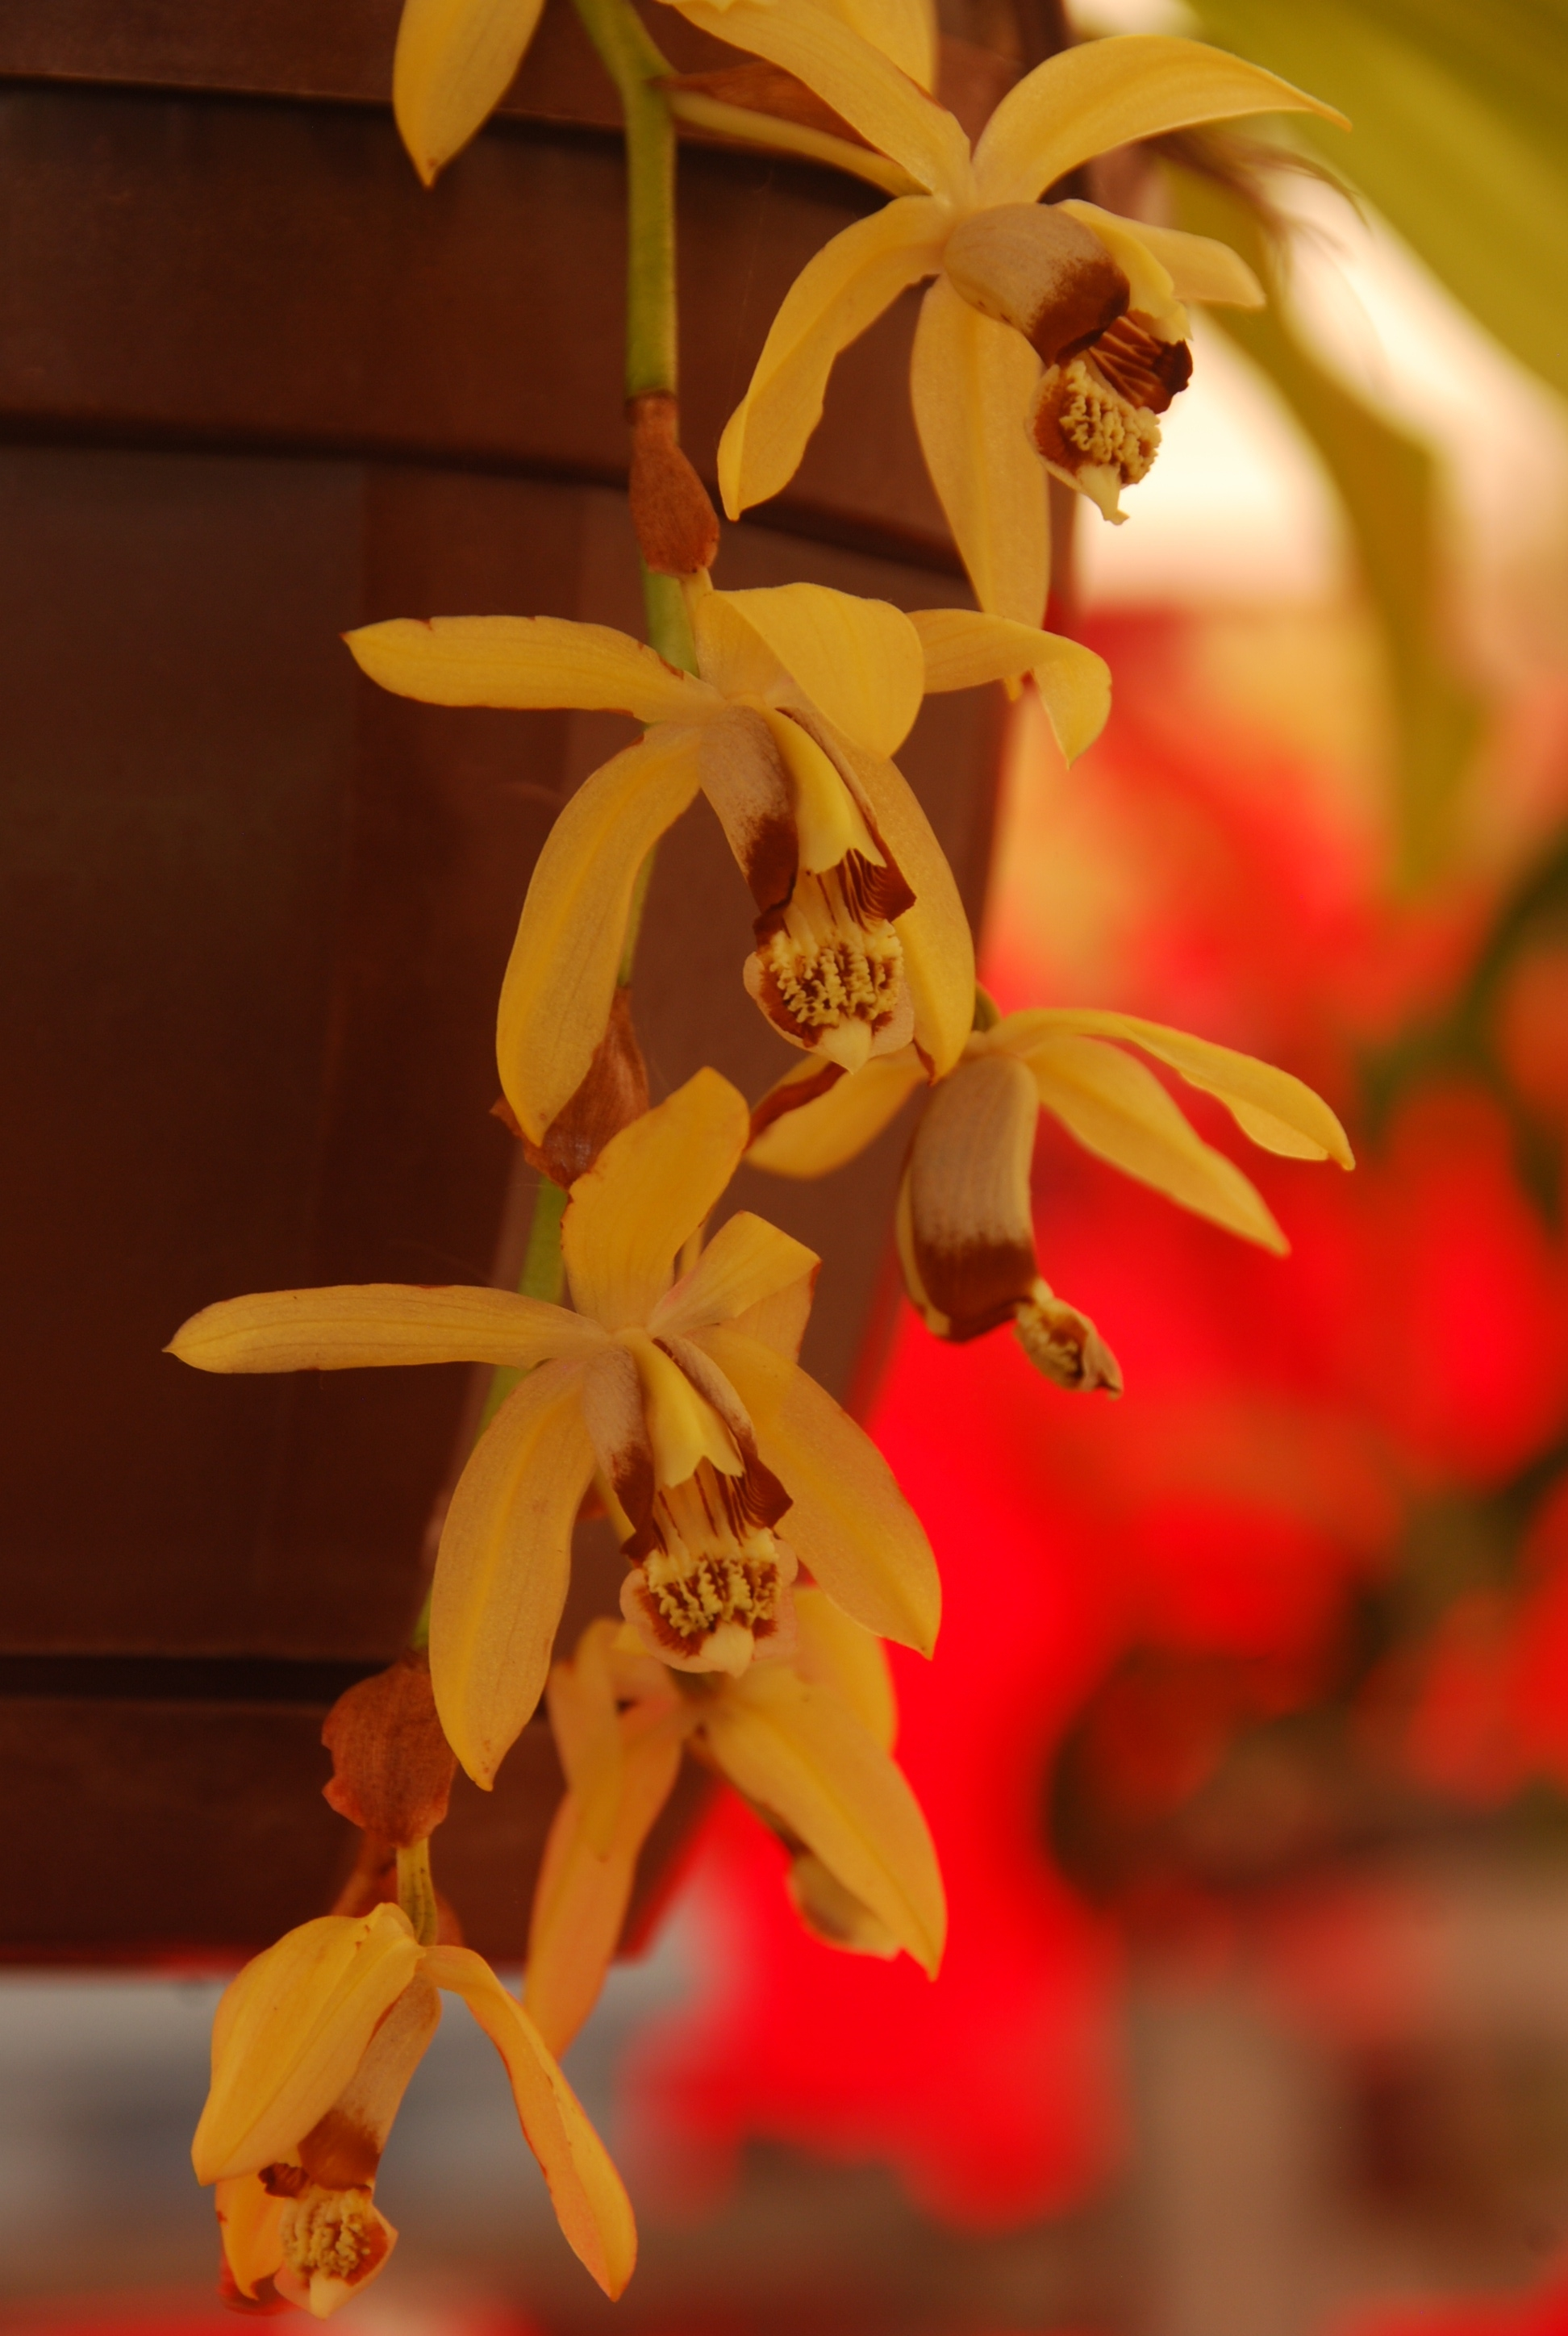 Coelogyne Tomentosa in Blüte — © M. Wolff 2017